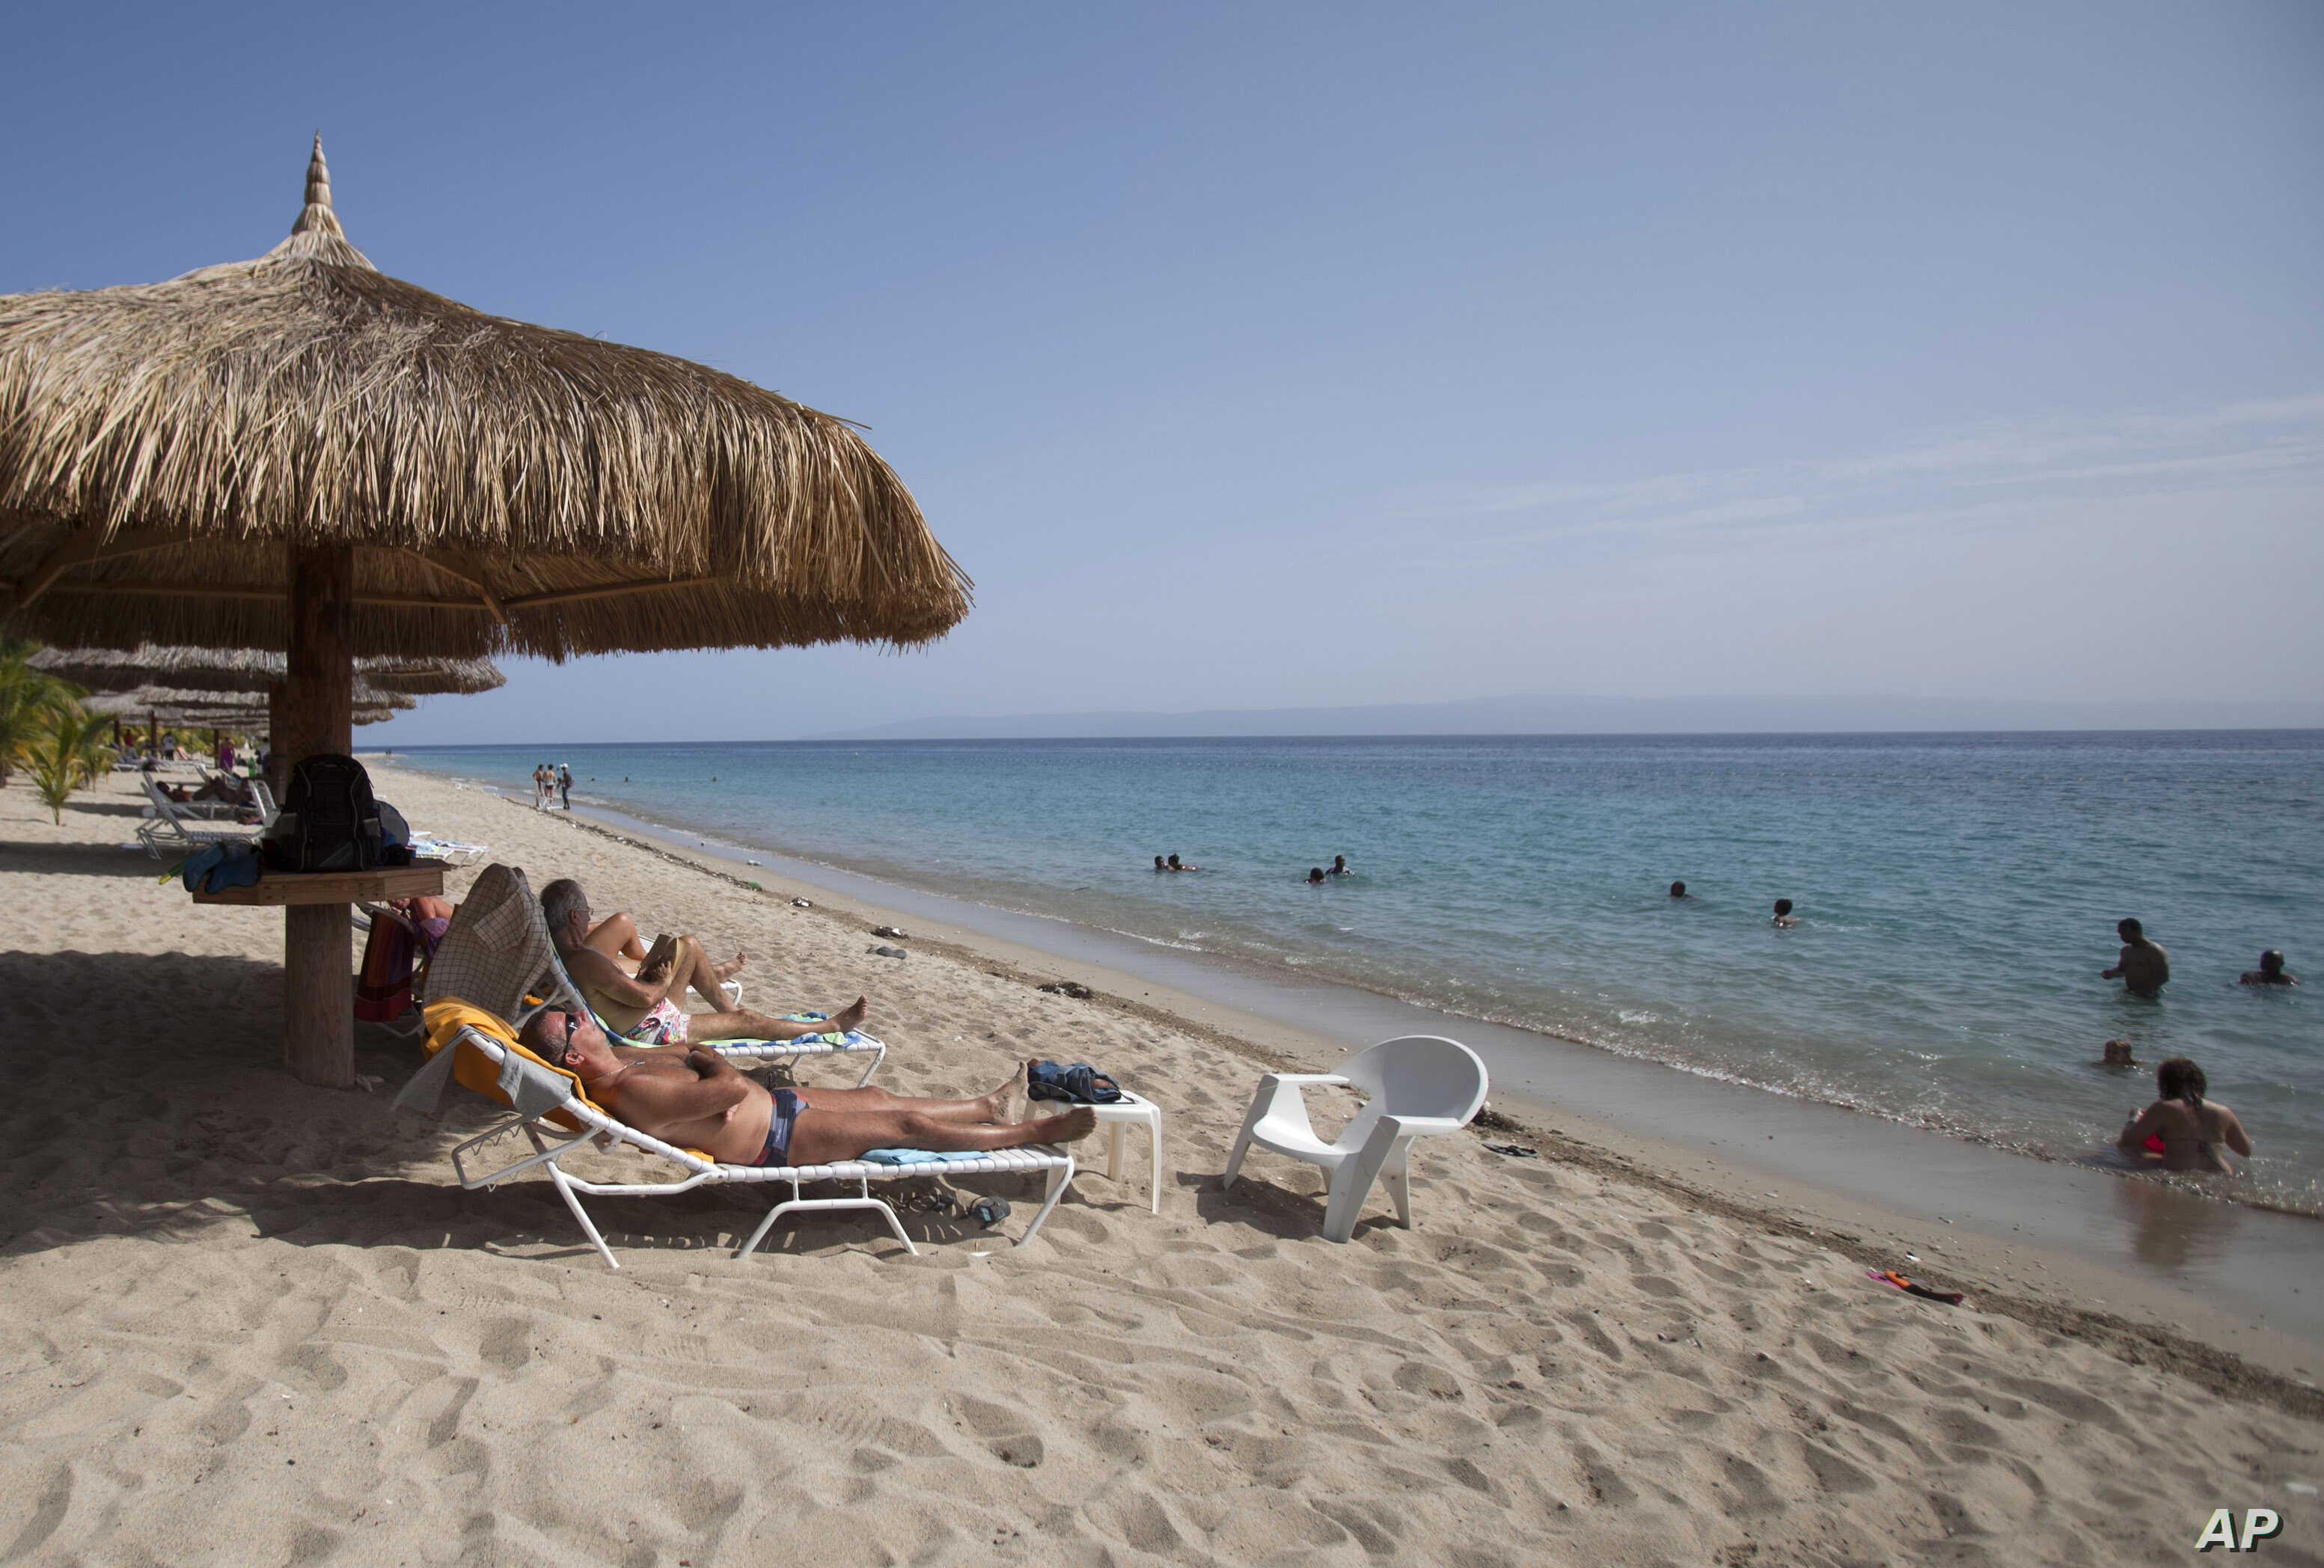 FILE - tourists rest seaside while others wade in the ocean waters at the Club Indigo beach resort in Montrouis, Haiti.